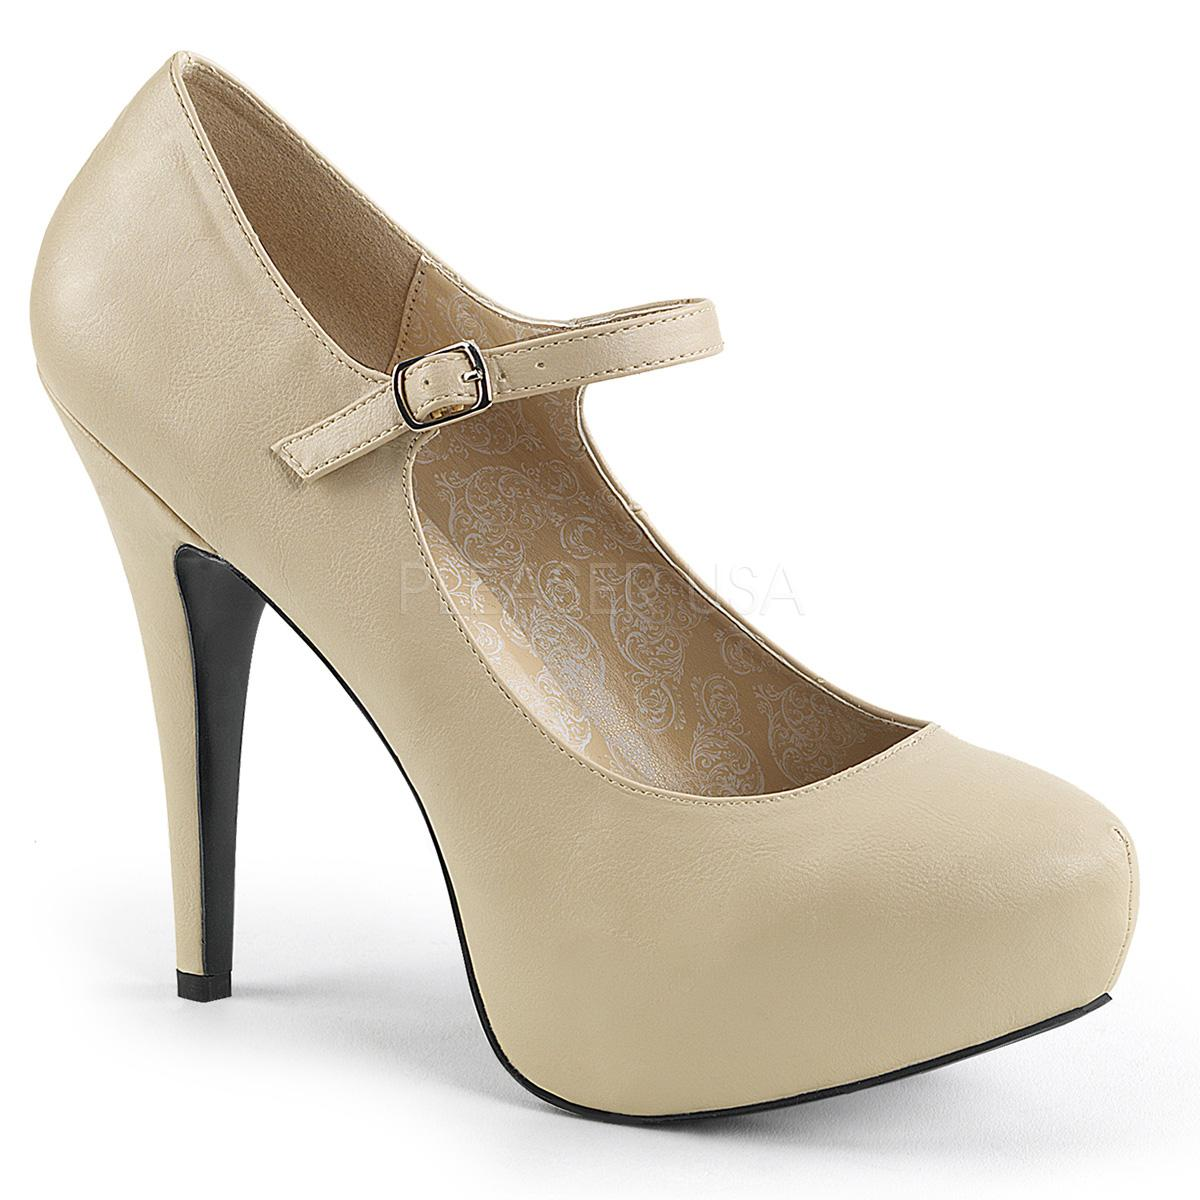 Cream Faux Leather Mary Jane Pumps